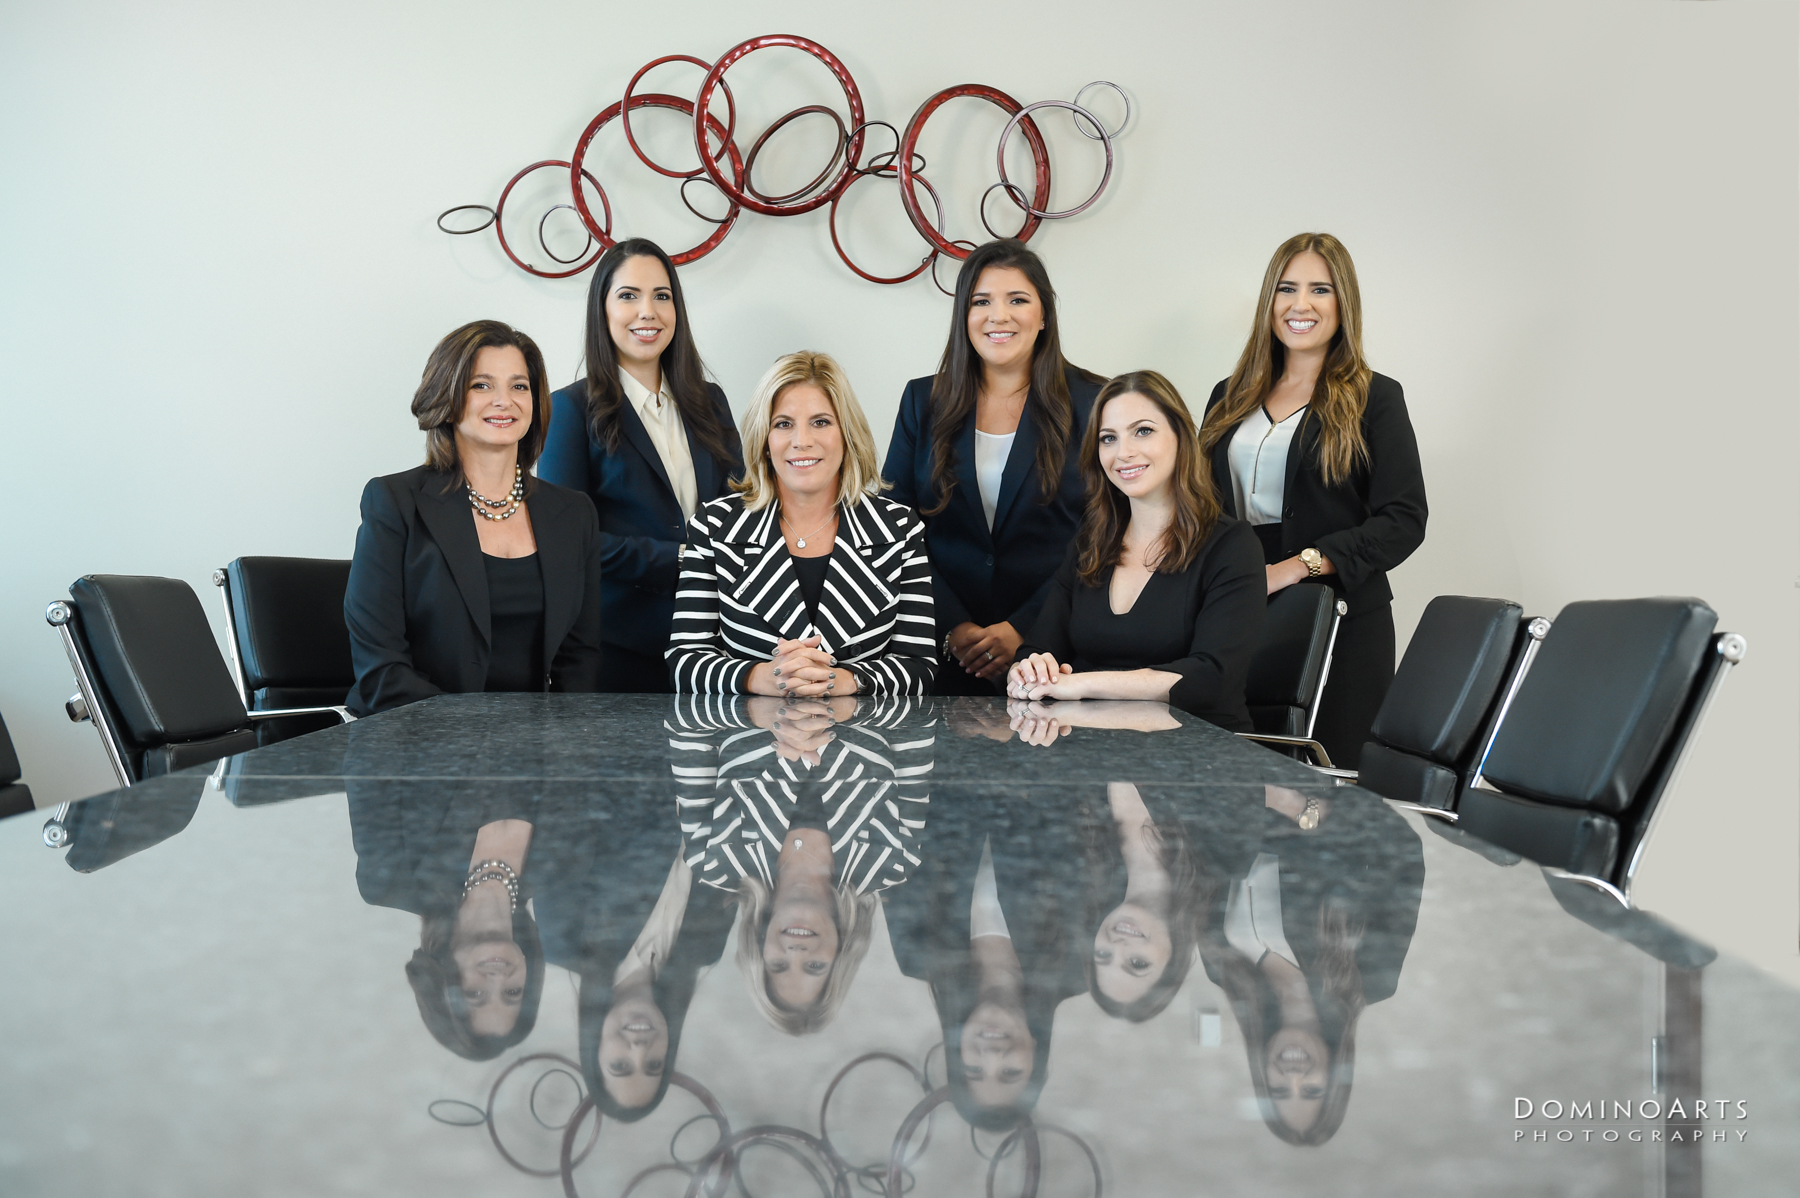 Law Firm Professional Photography / Foster, Morales, Sockel Stone, LLC